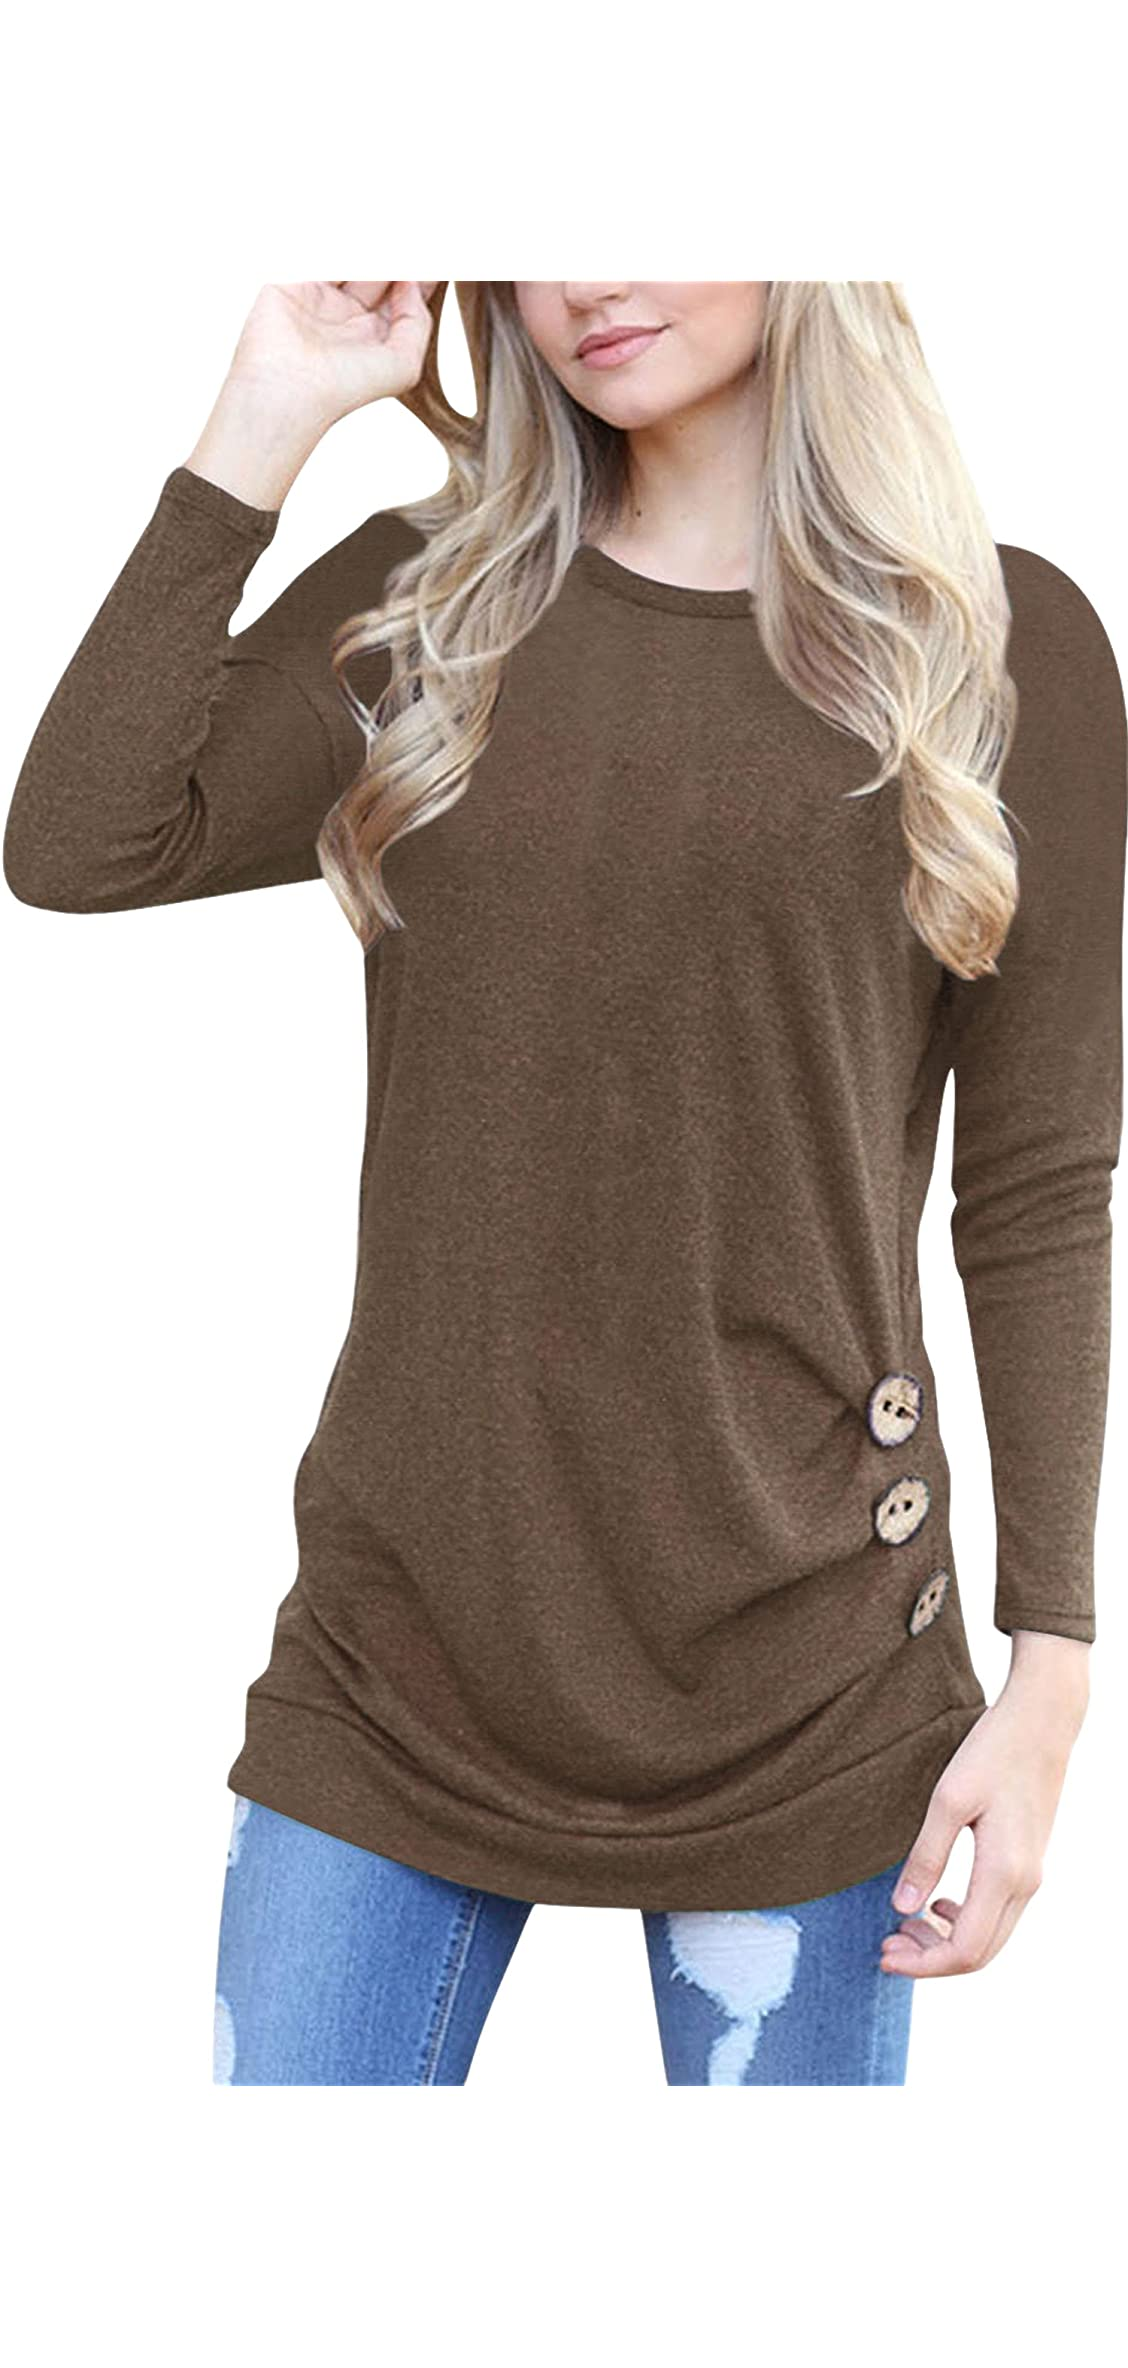 Women's Casual Long Sleeve Round Neck Loose Tunic T Tops